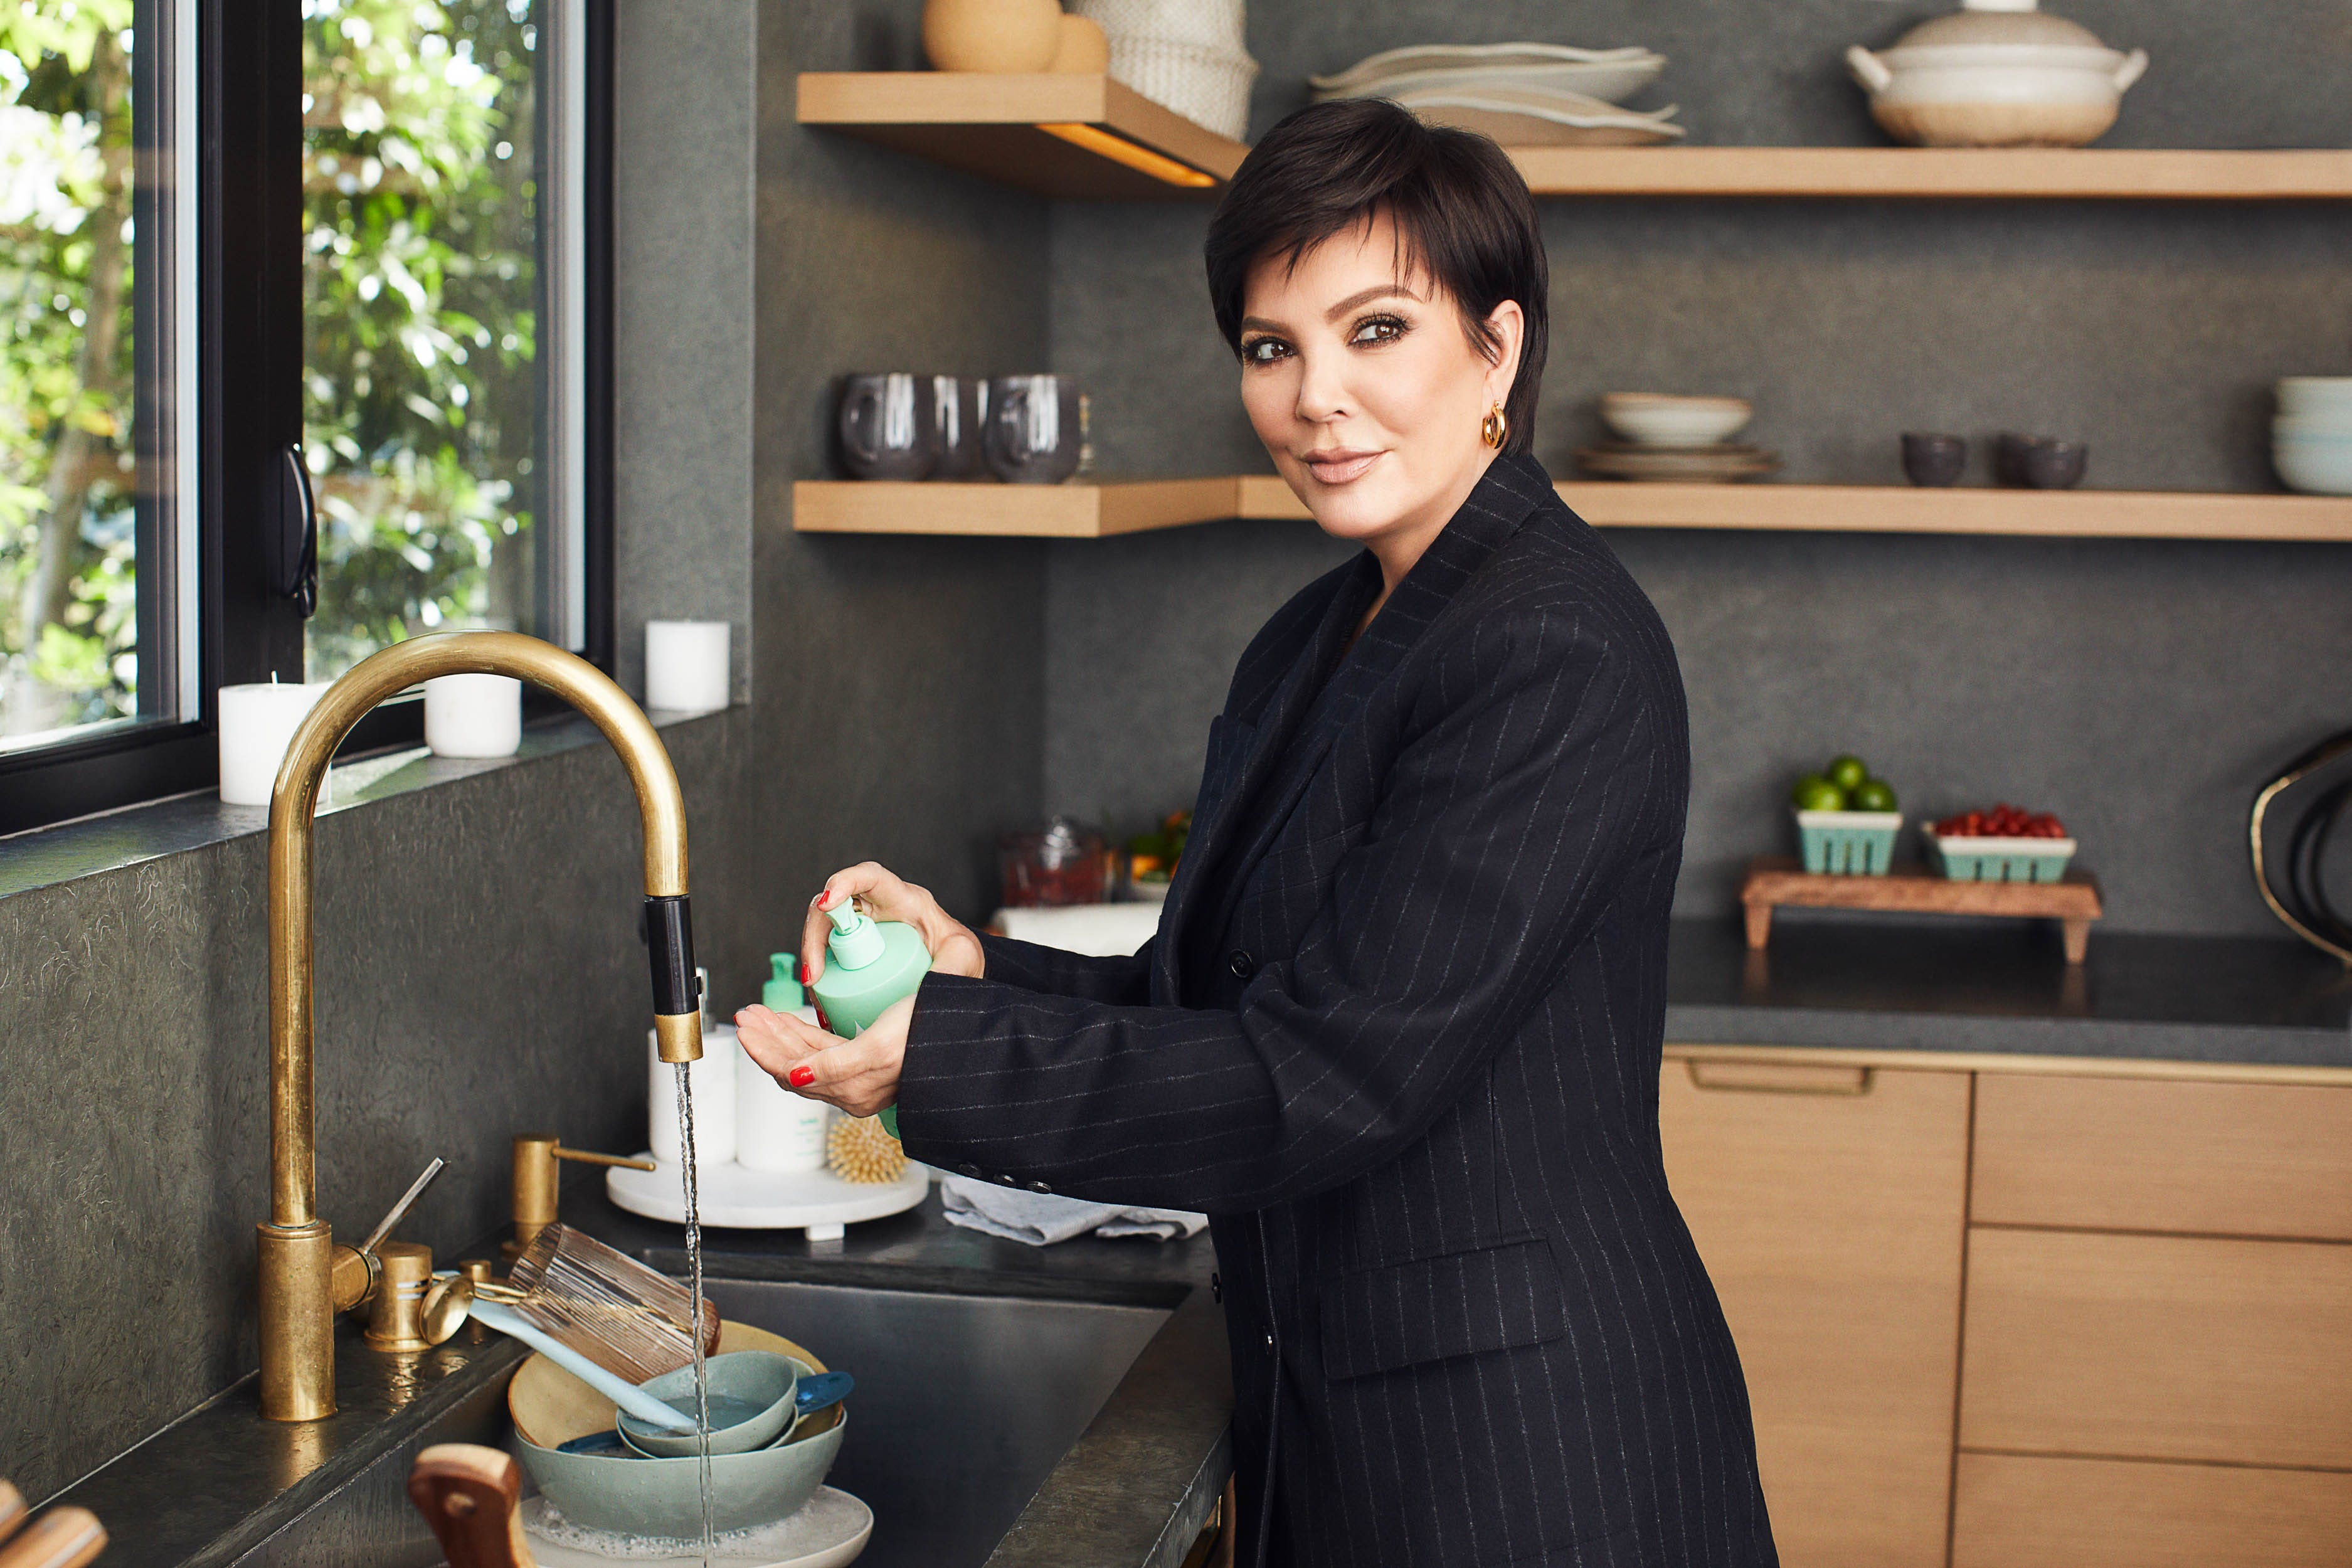 Kris Jenner talks 'very challenging' pandemic year, shares her secret for coping with drama